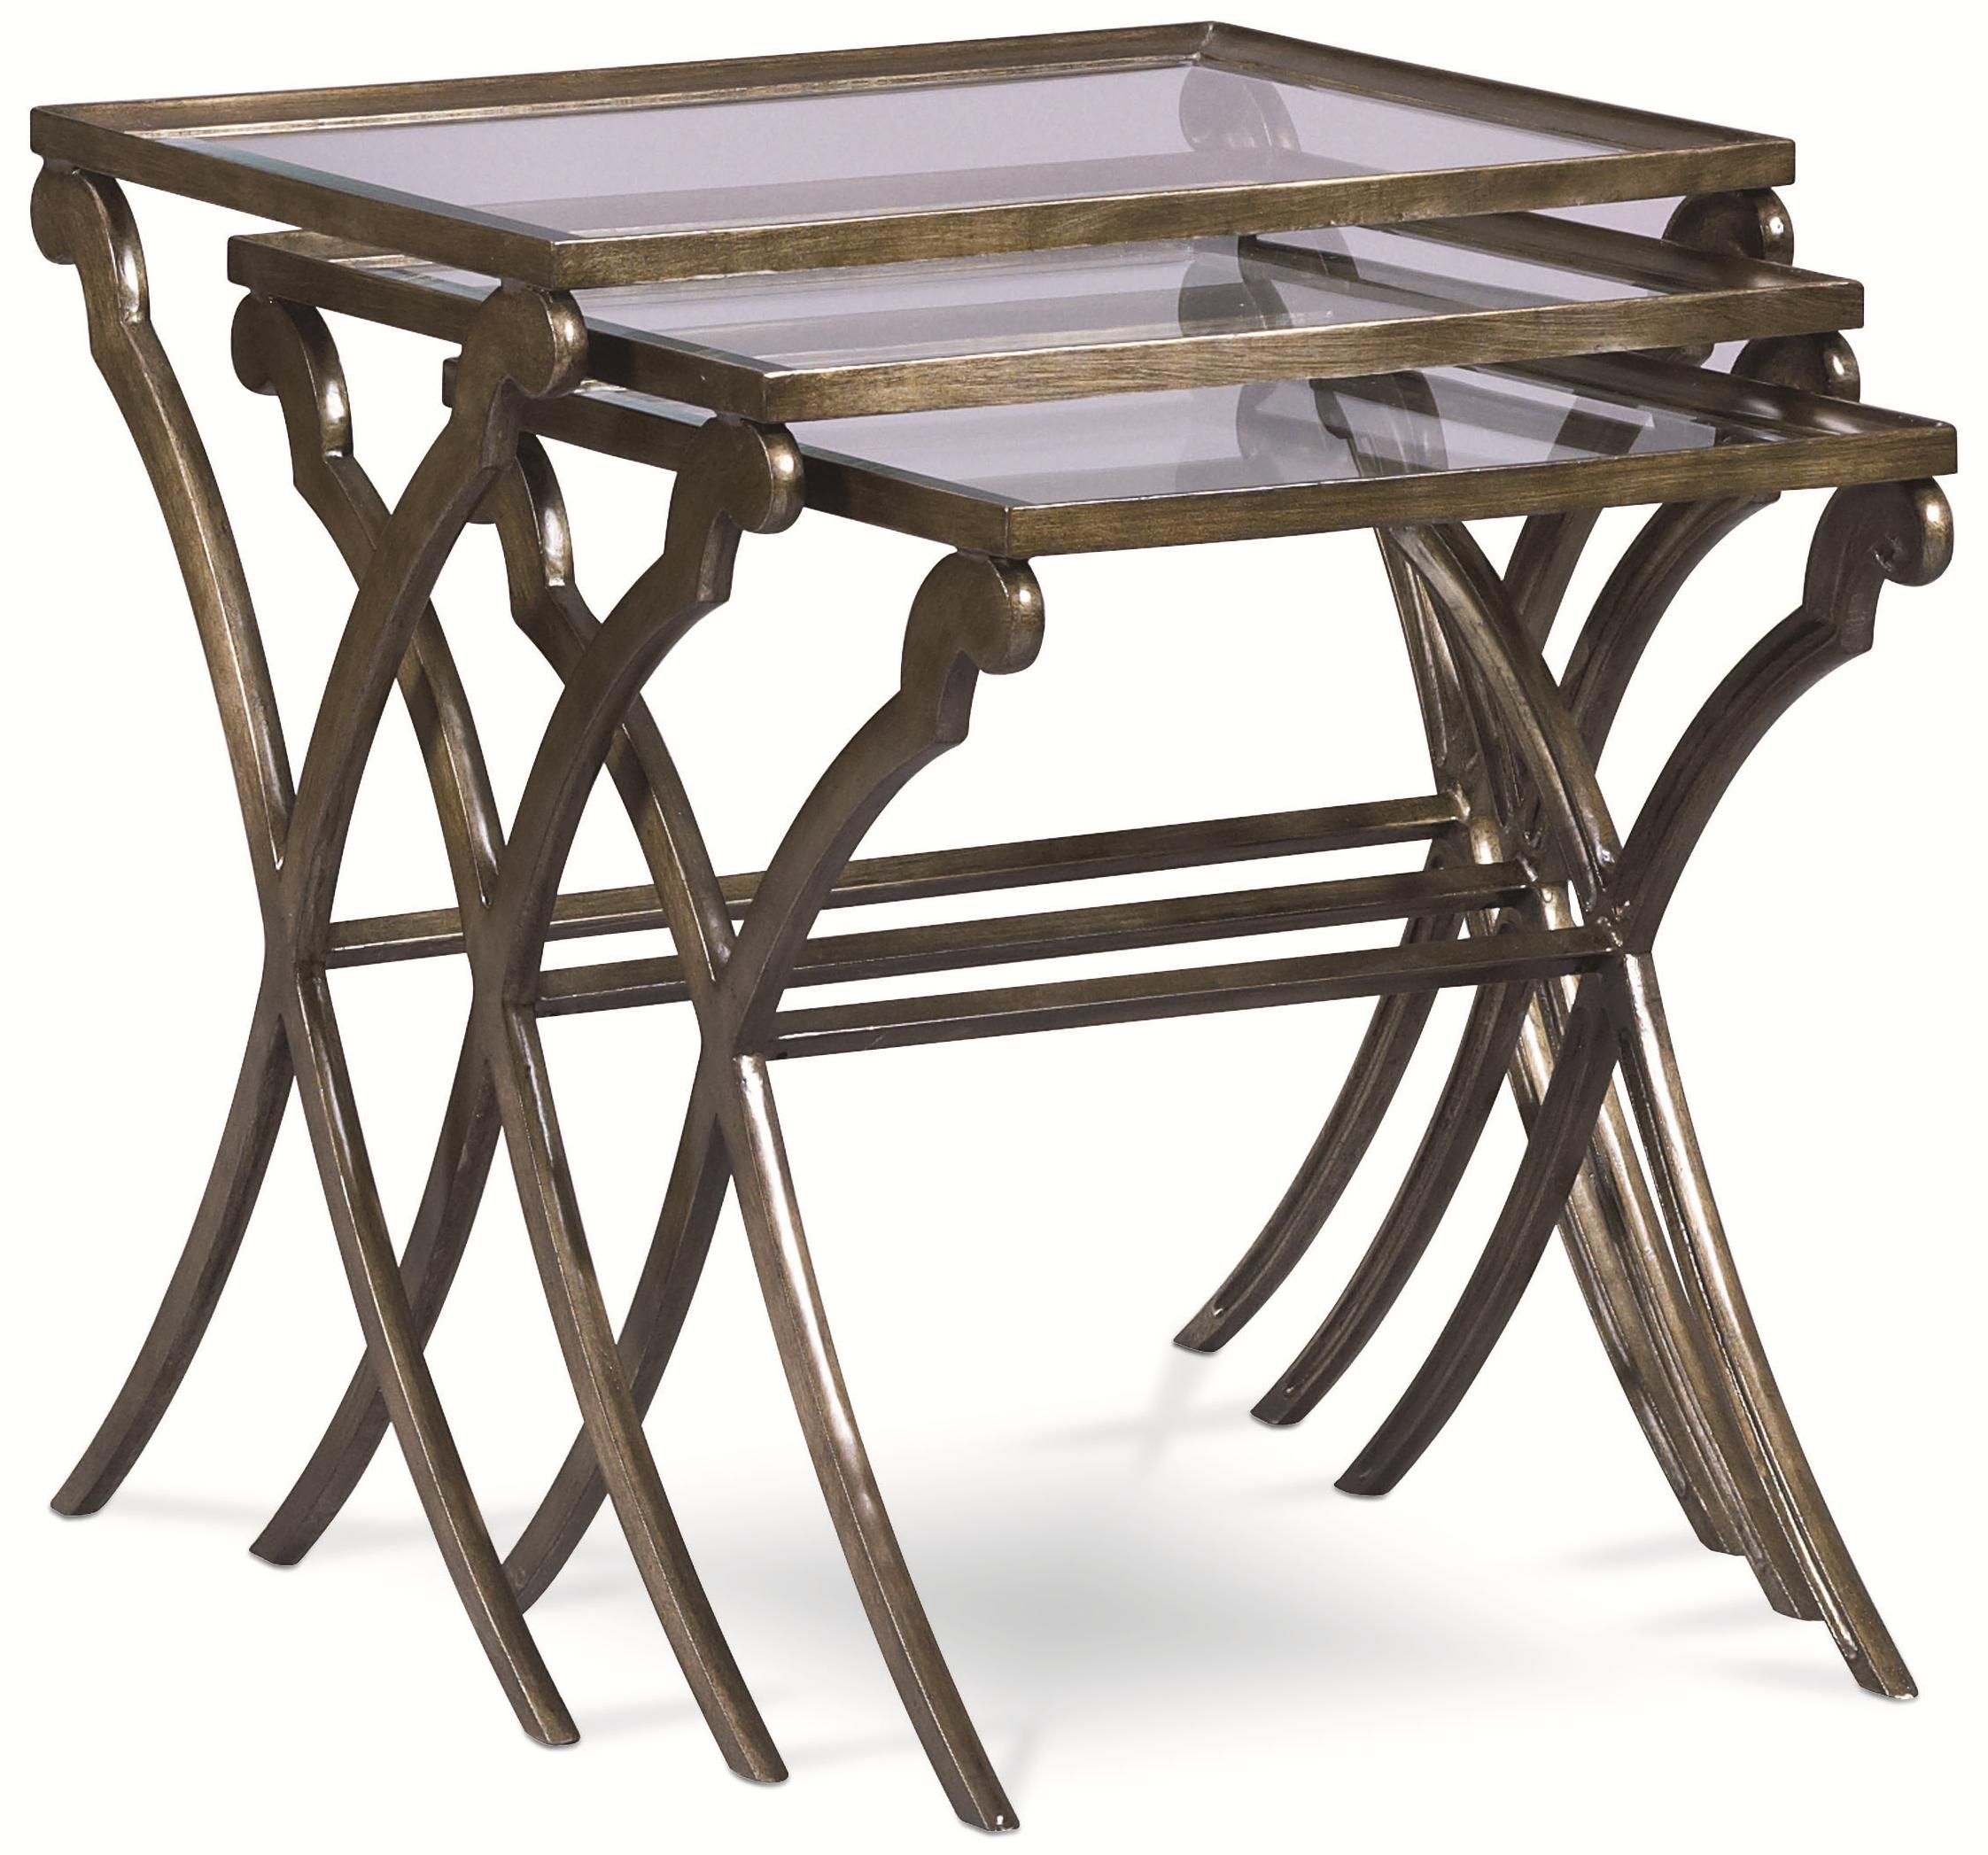 Thomasville® Spellbound Nesting Tables - Item Number: 82291-245